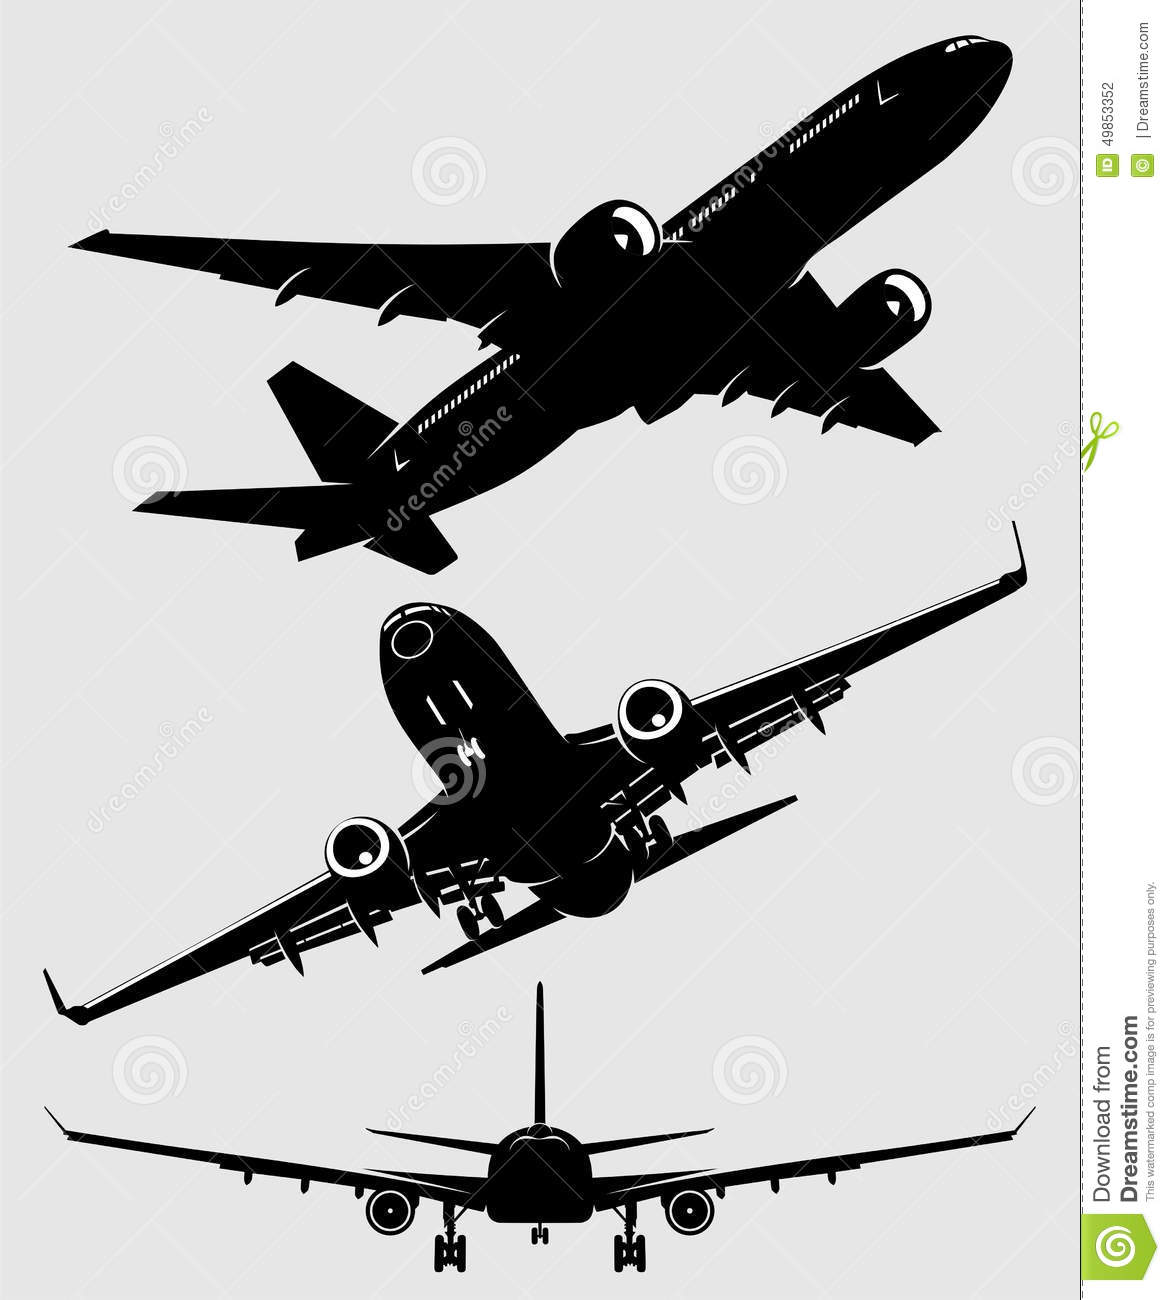 airplane stock vector illustration of flit  flight plane vector angle needed calculator plane vectors to the initial